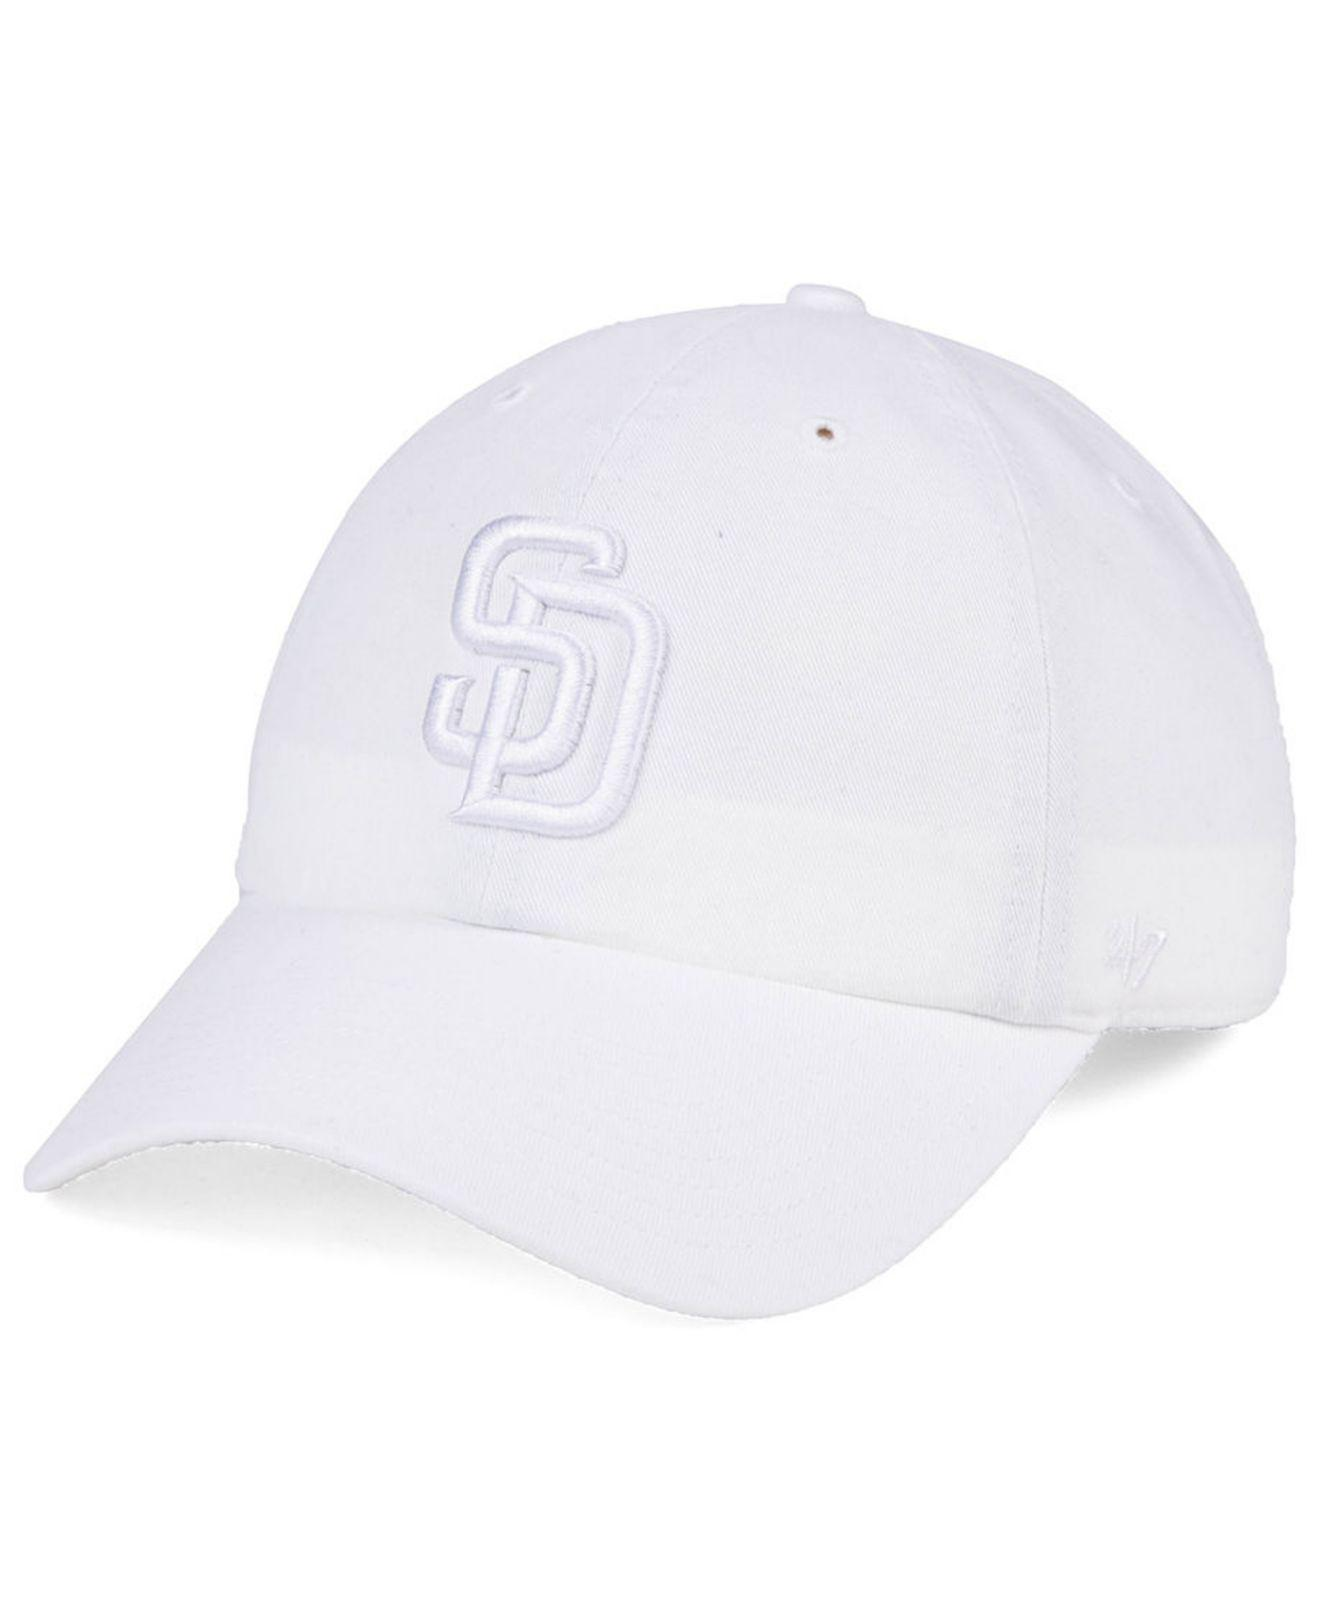 12a63a98e3b6c Lyst - 47 Brand San Diego Padres White white Clean Up Cap in White ...